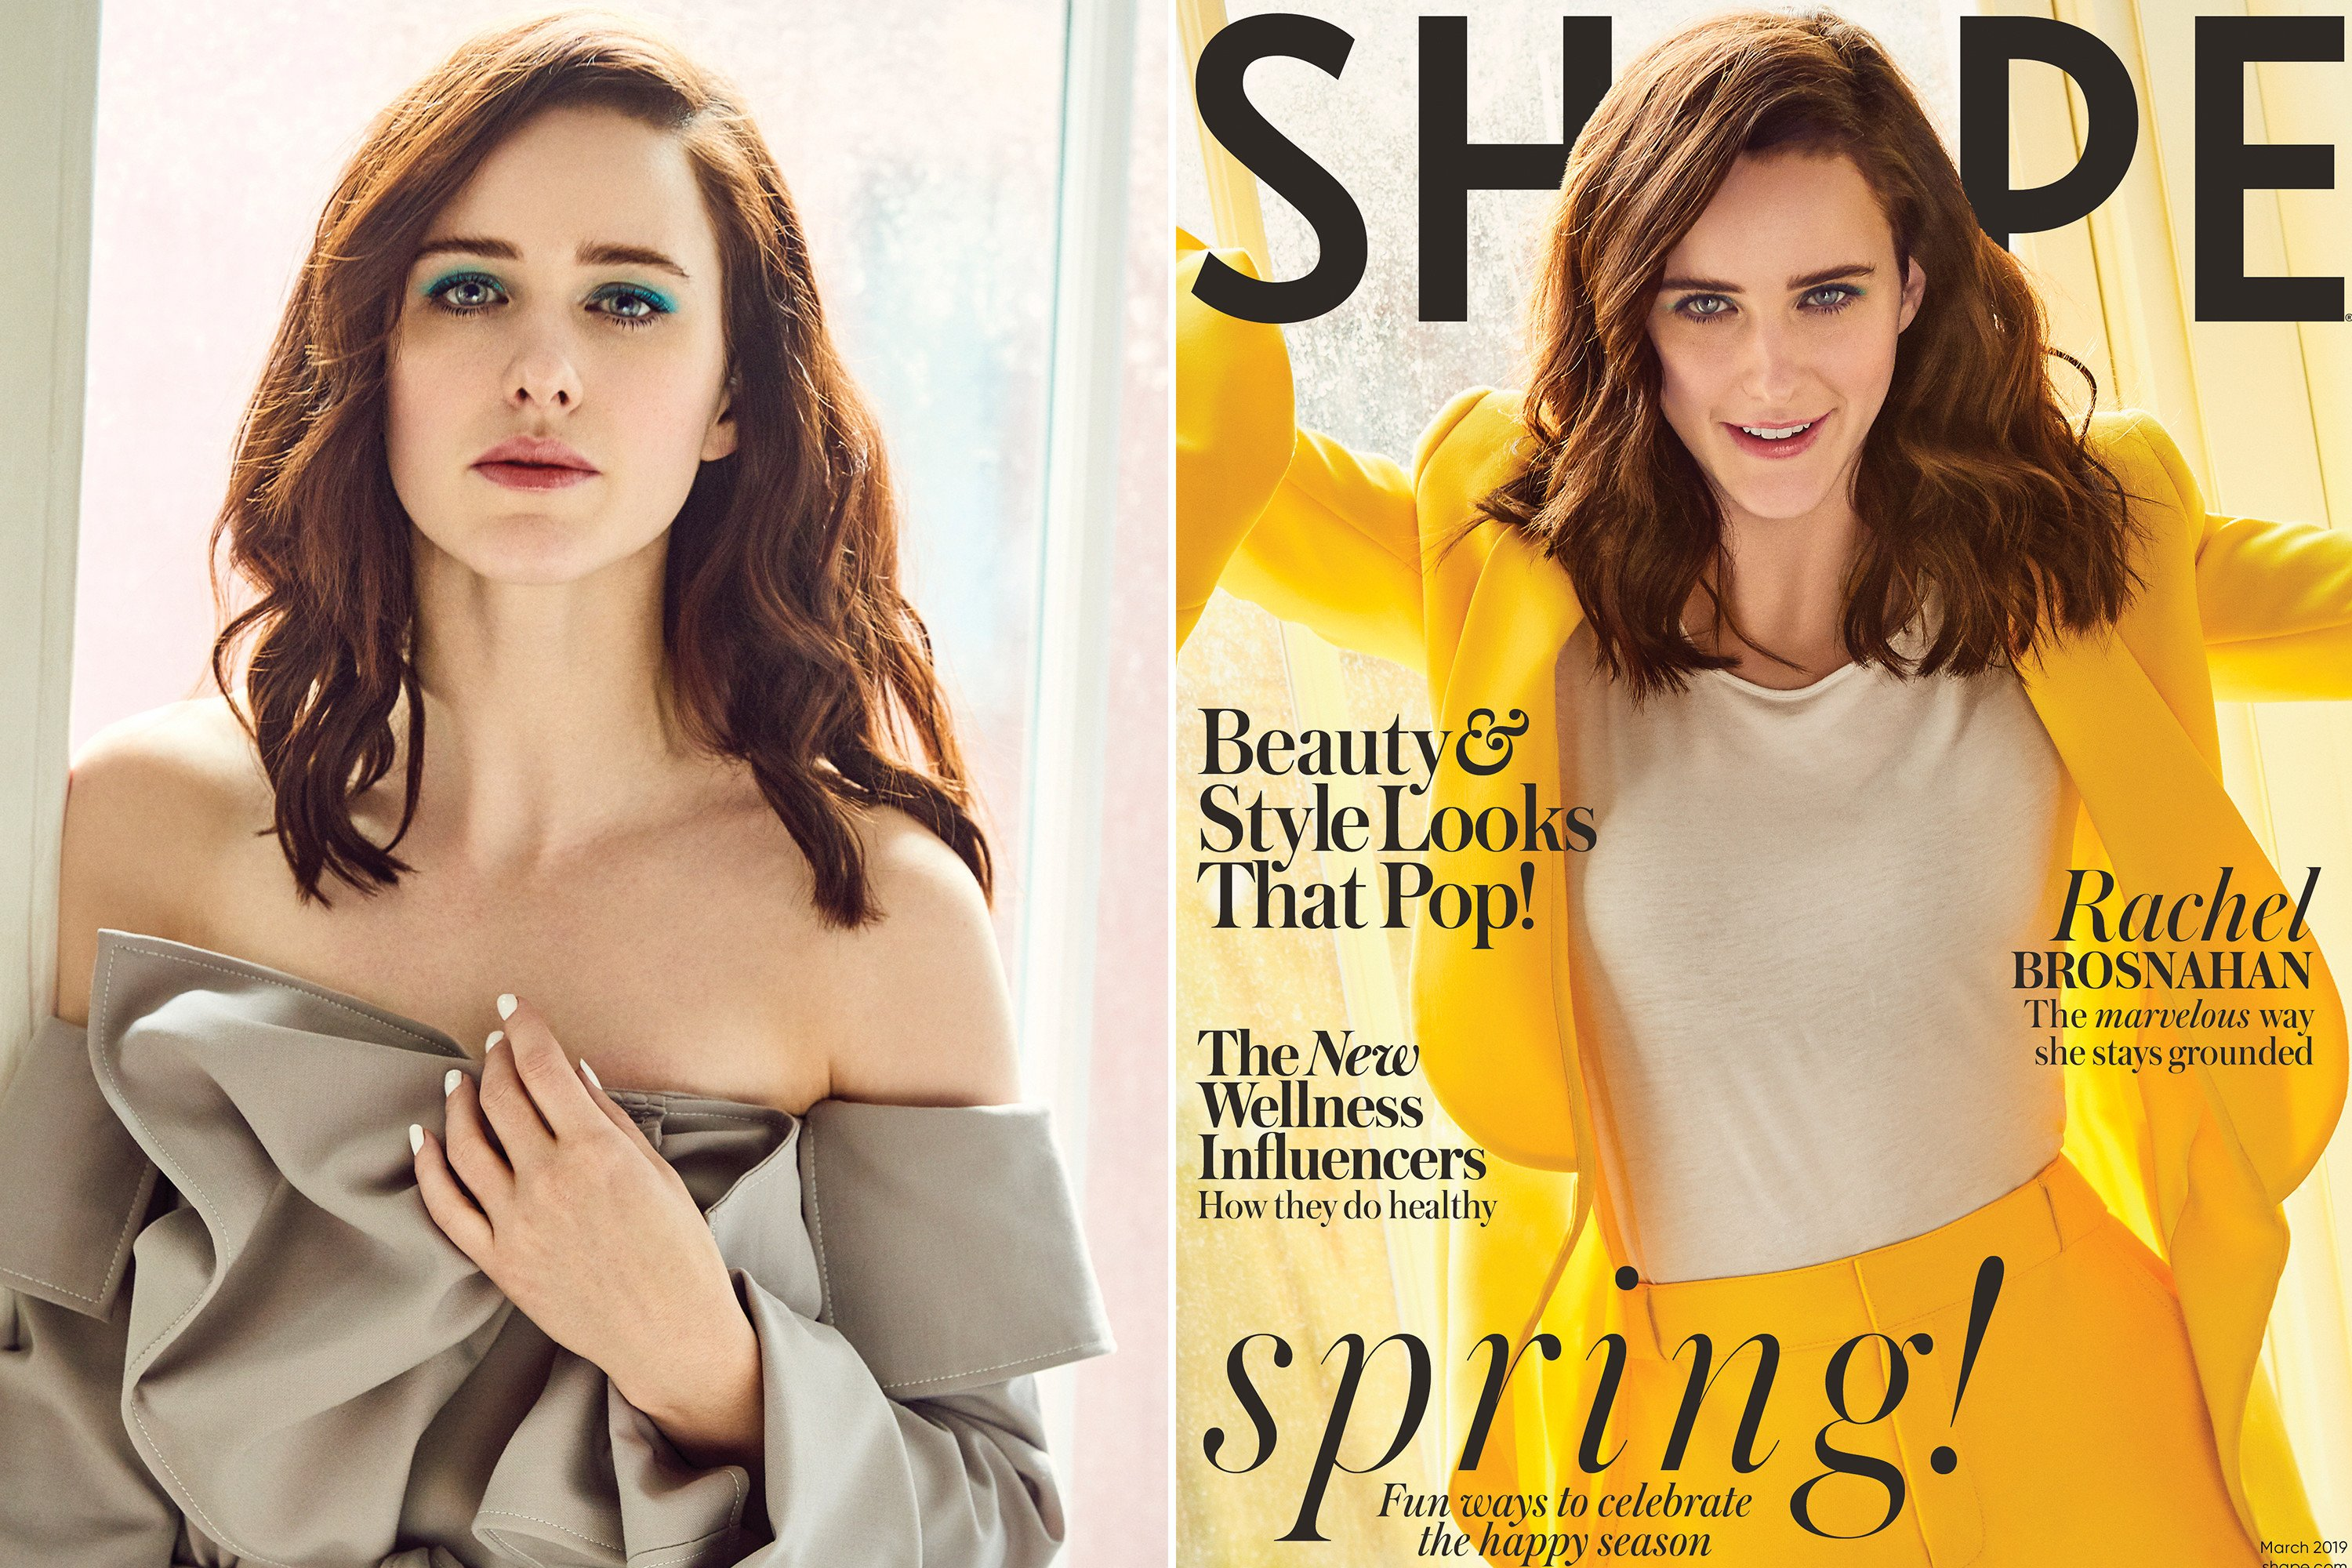 Rachel Brosnahan says her weight loss was 'unhealthy' during 'Mrs. Maisel'